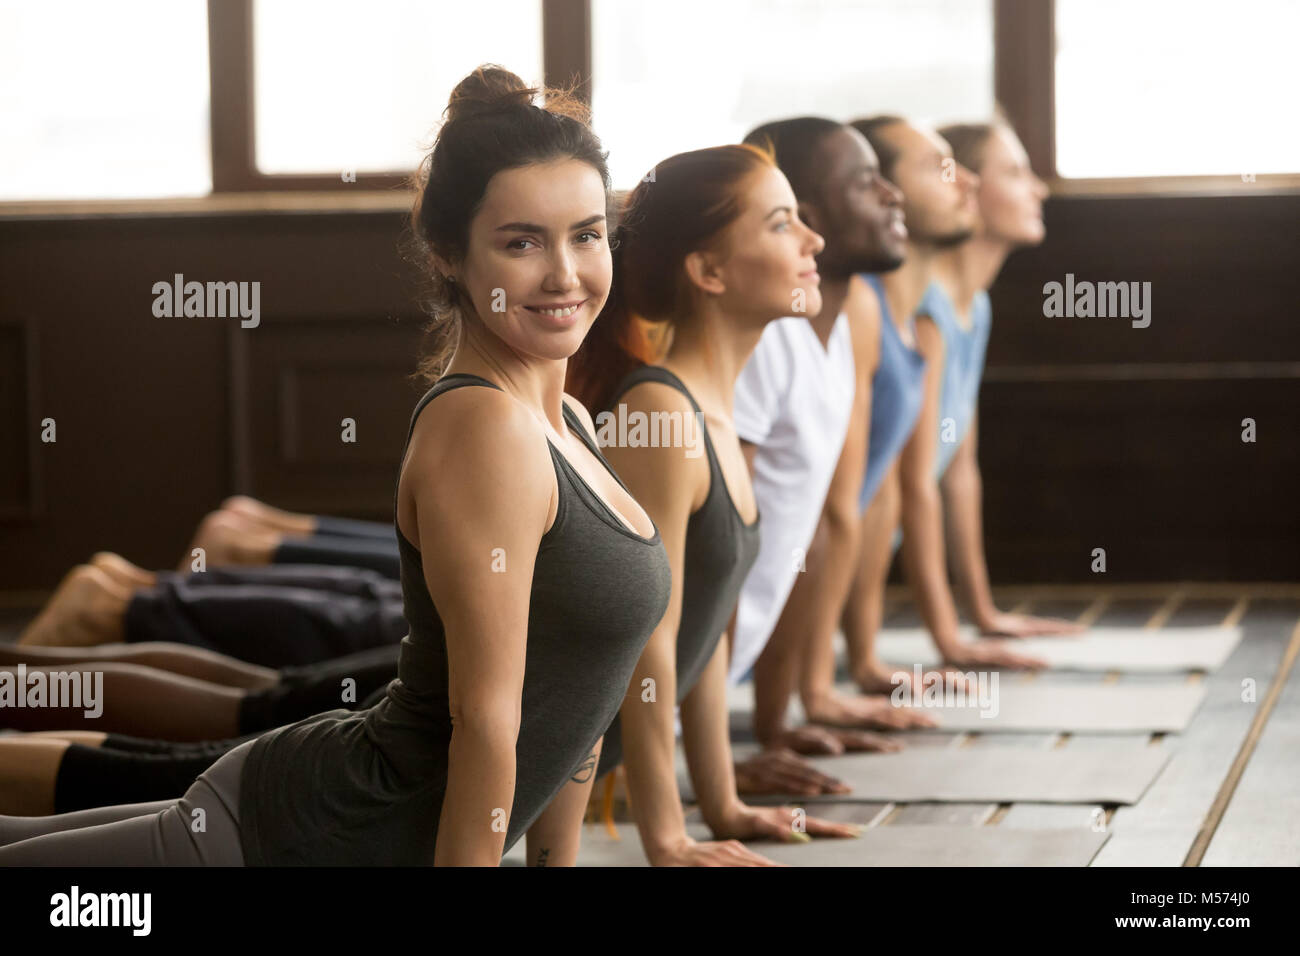 Yoga instructor looking at camera doing exercise at group traini - Stock Image